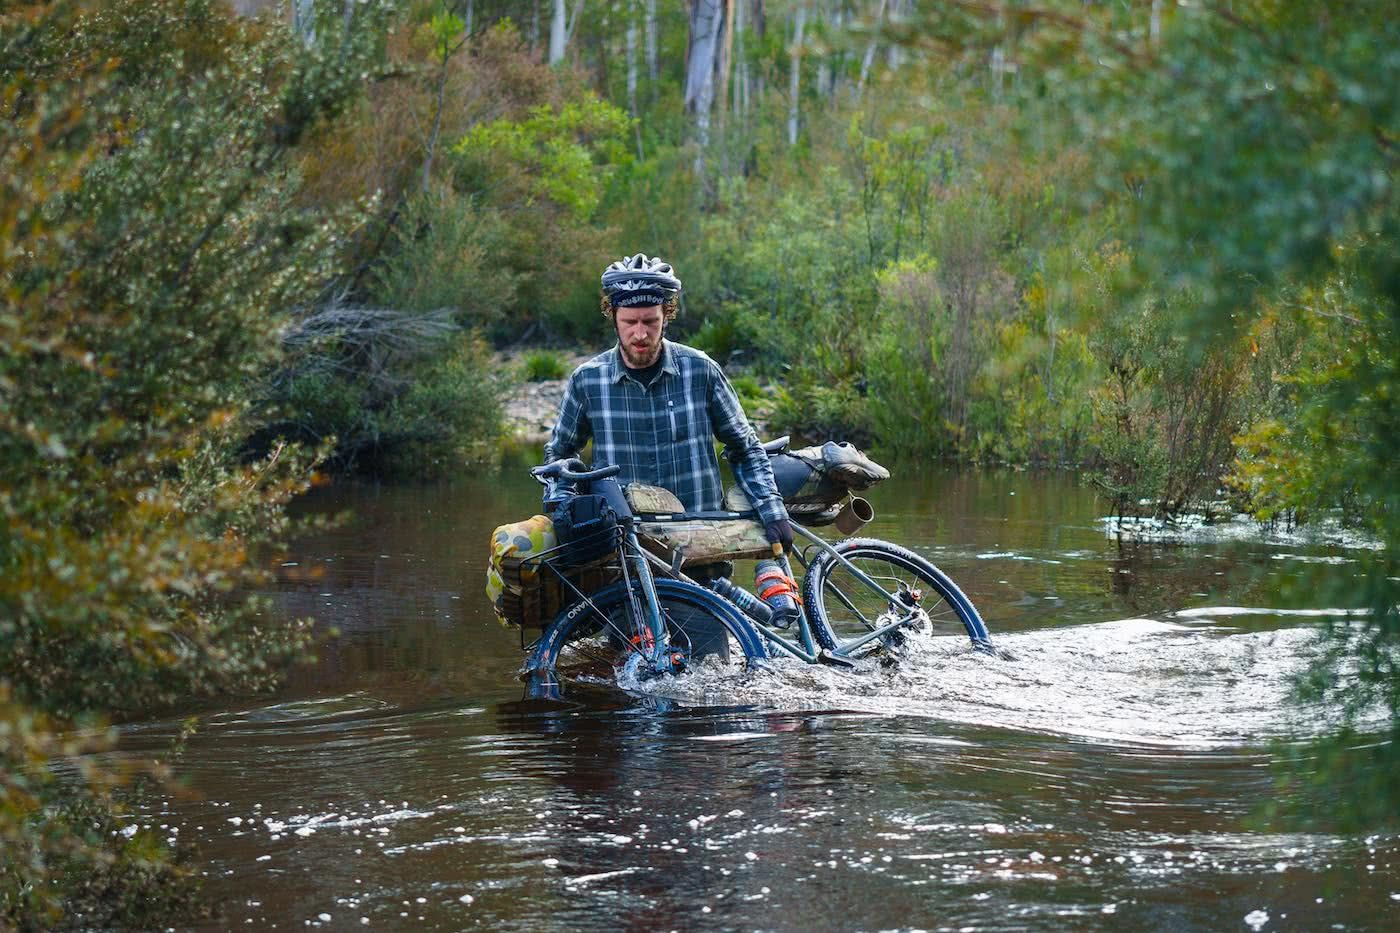 Aussie Adventure Makers / Bikepacking Edition by Mattie Gould, photo by Adam Lee, Keith water-crossing